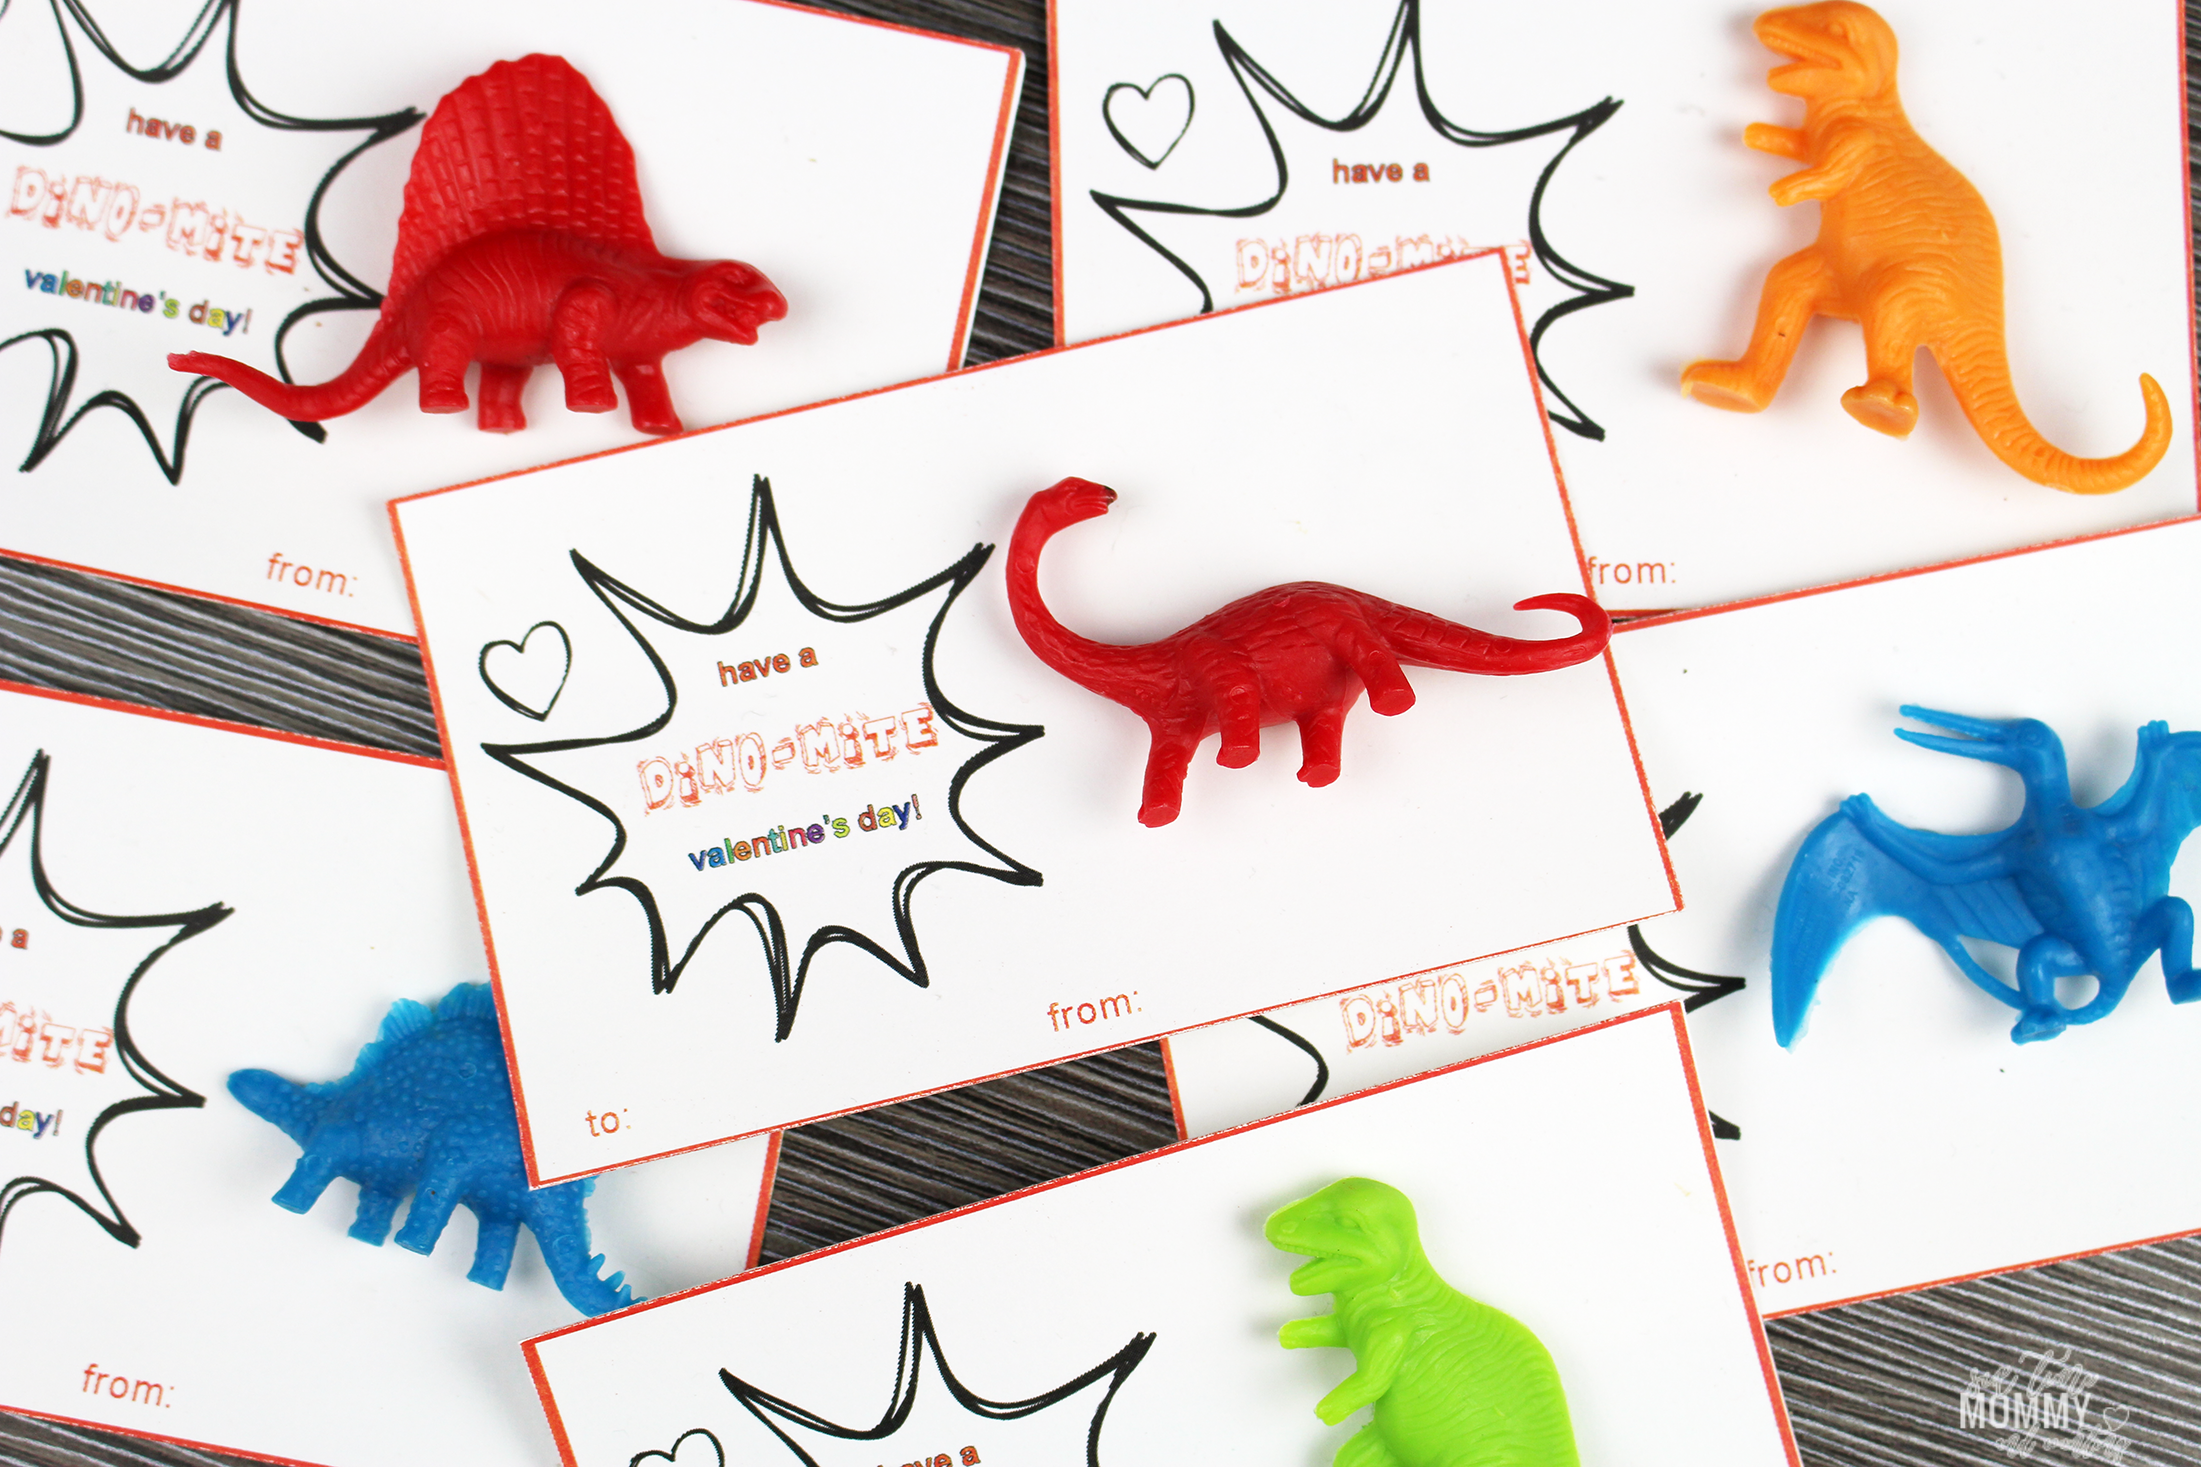 graphic about Free Printable Dinosaur named No cost Printable Dinosaur Valentines Working day Playing cards - 6 Year